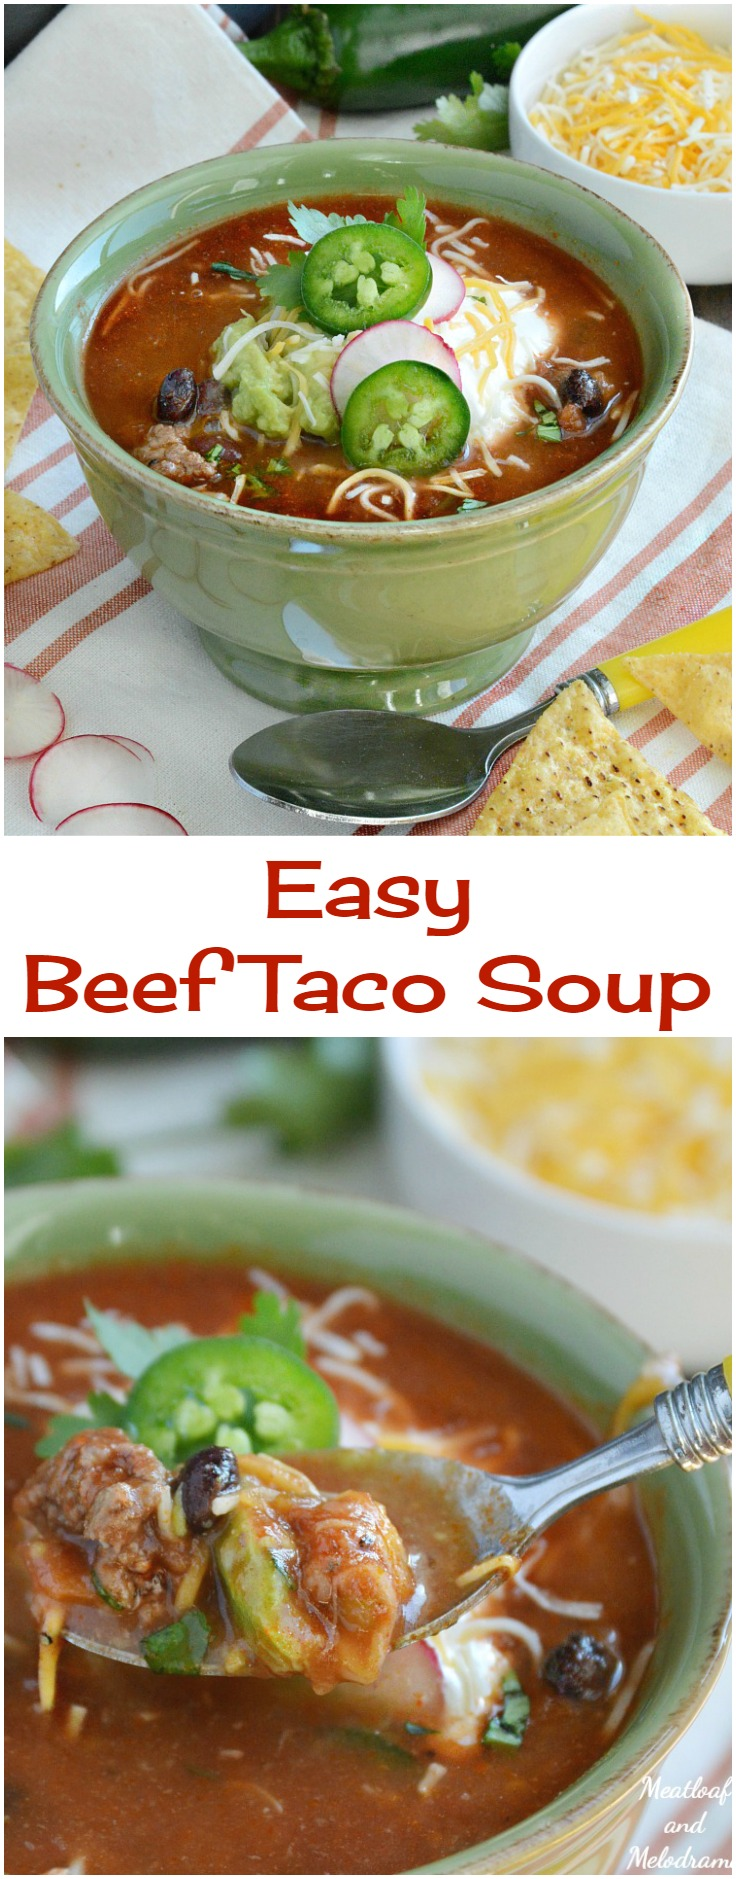 Easy Beef Taco Soup from meatloafandmelodrama.com